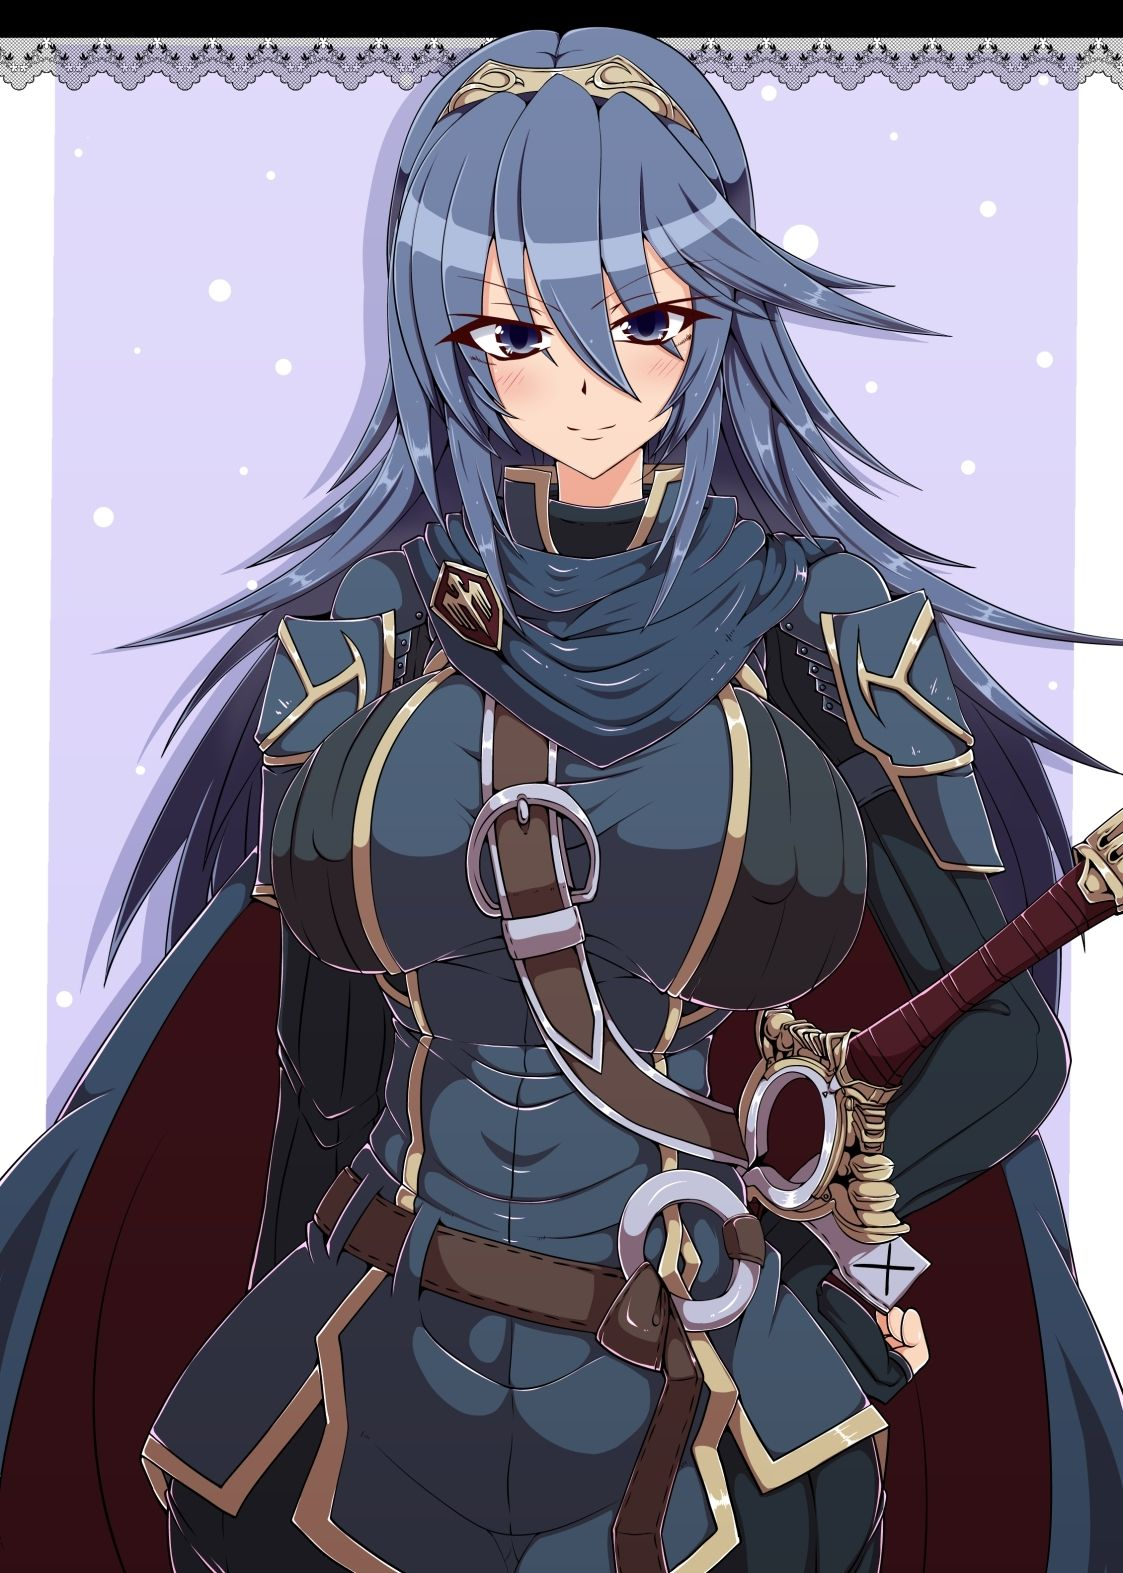 emblem fire and robin lucina Would you date a perv even if she's cute anime